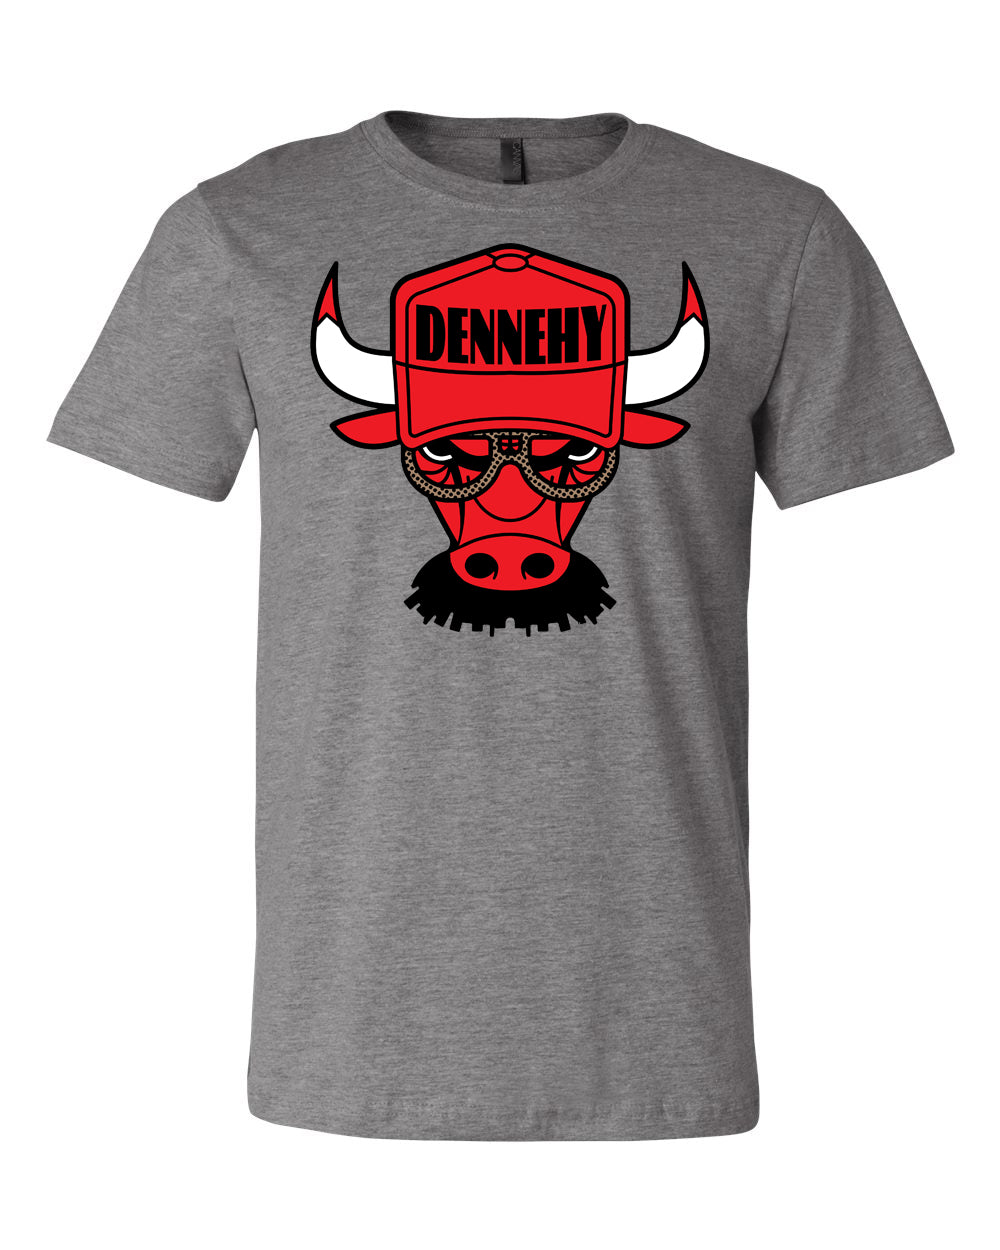 // 7 DAY PRESALE // DENNEHY BULLS TEE - DARK HEATHER